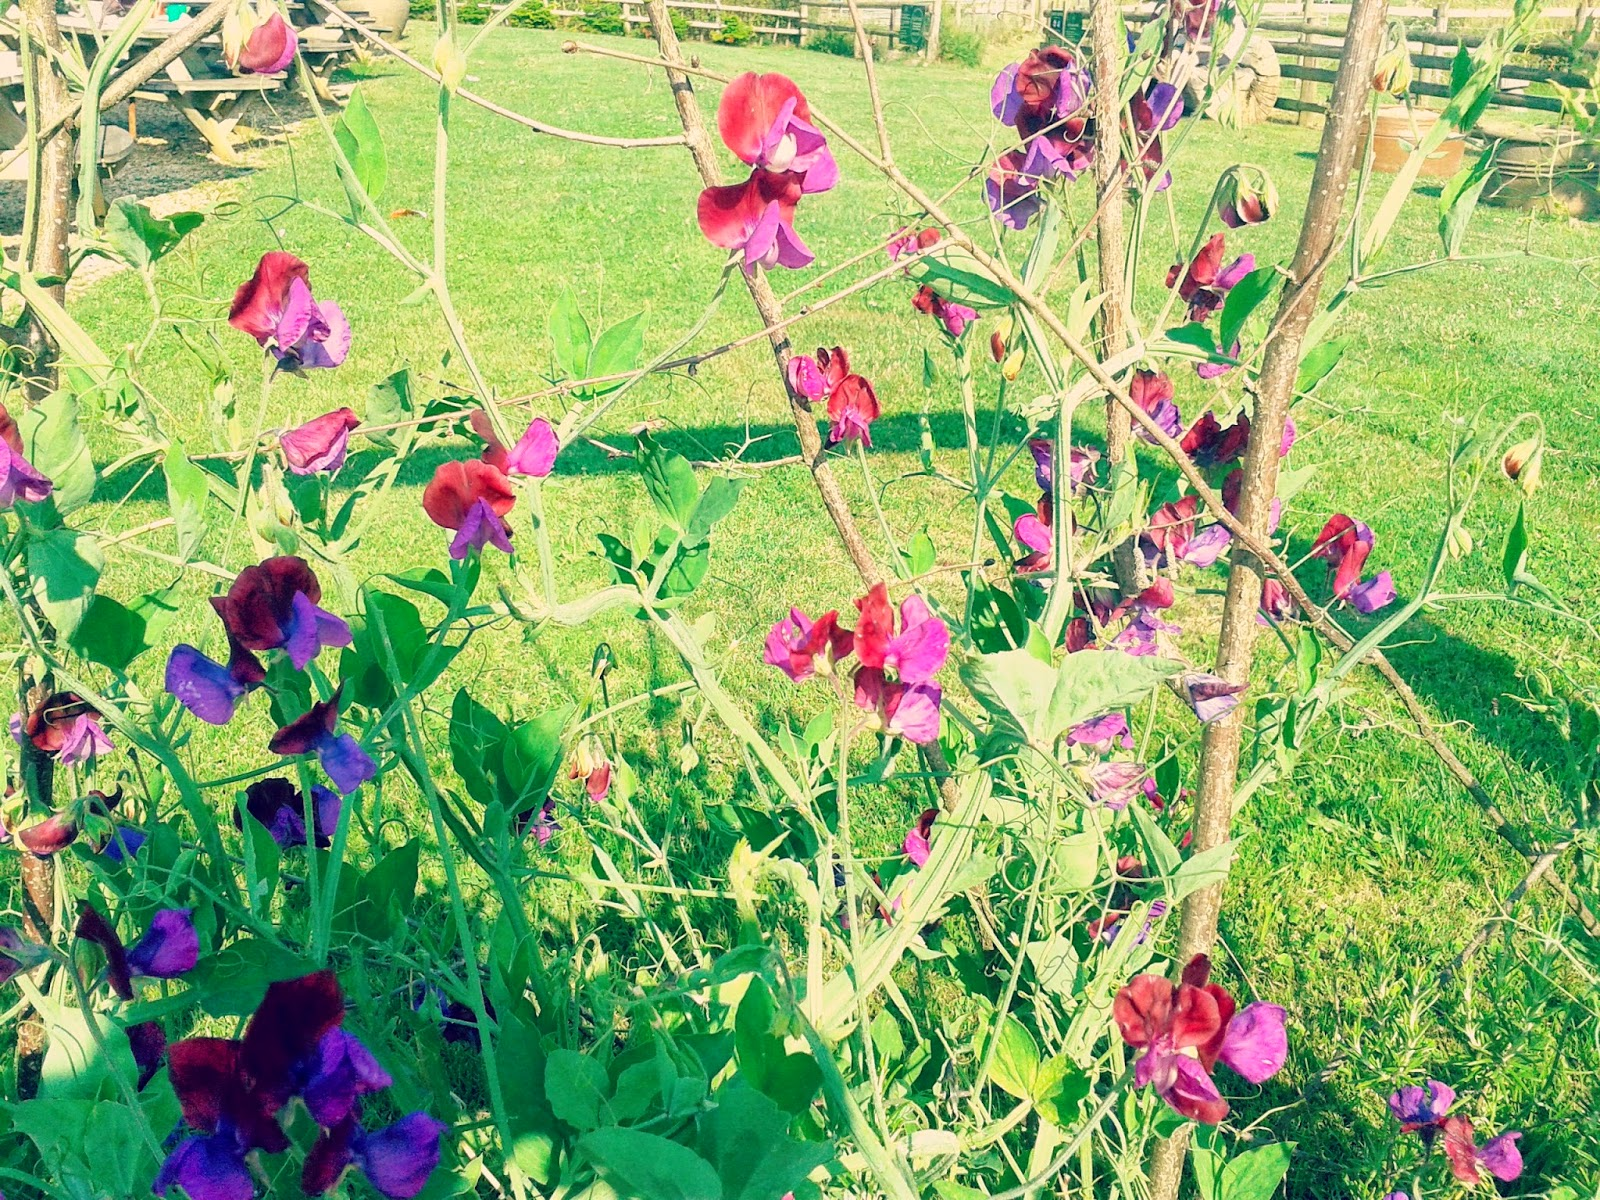 Project 365 day 204 - Sweetpeas // 76sunflowers